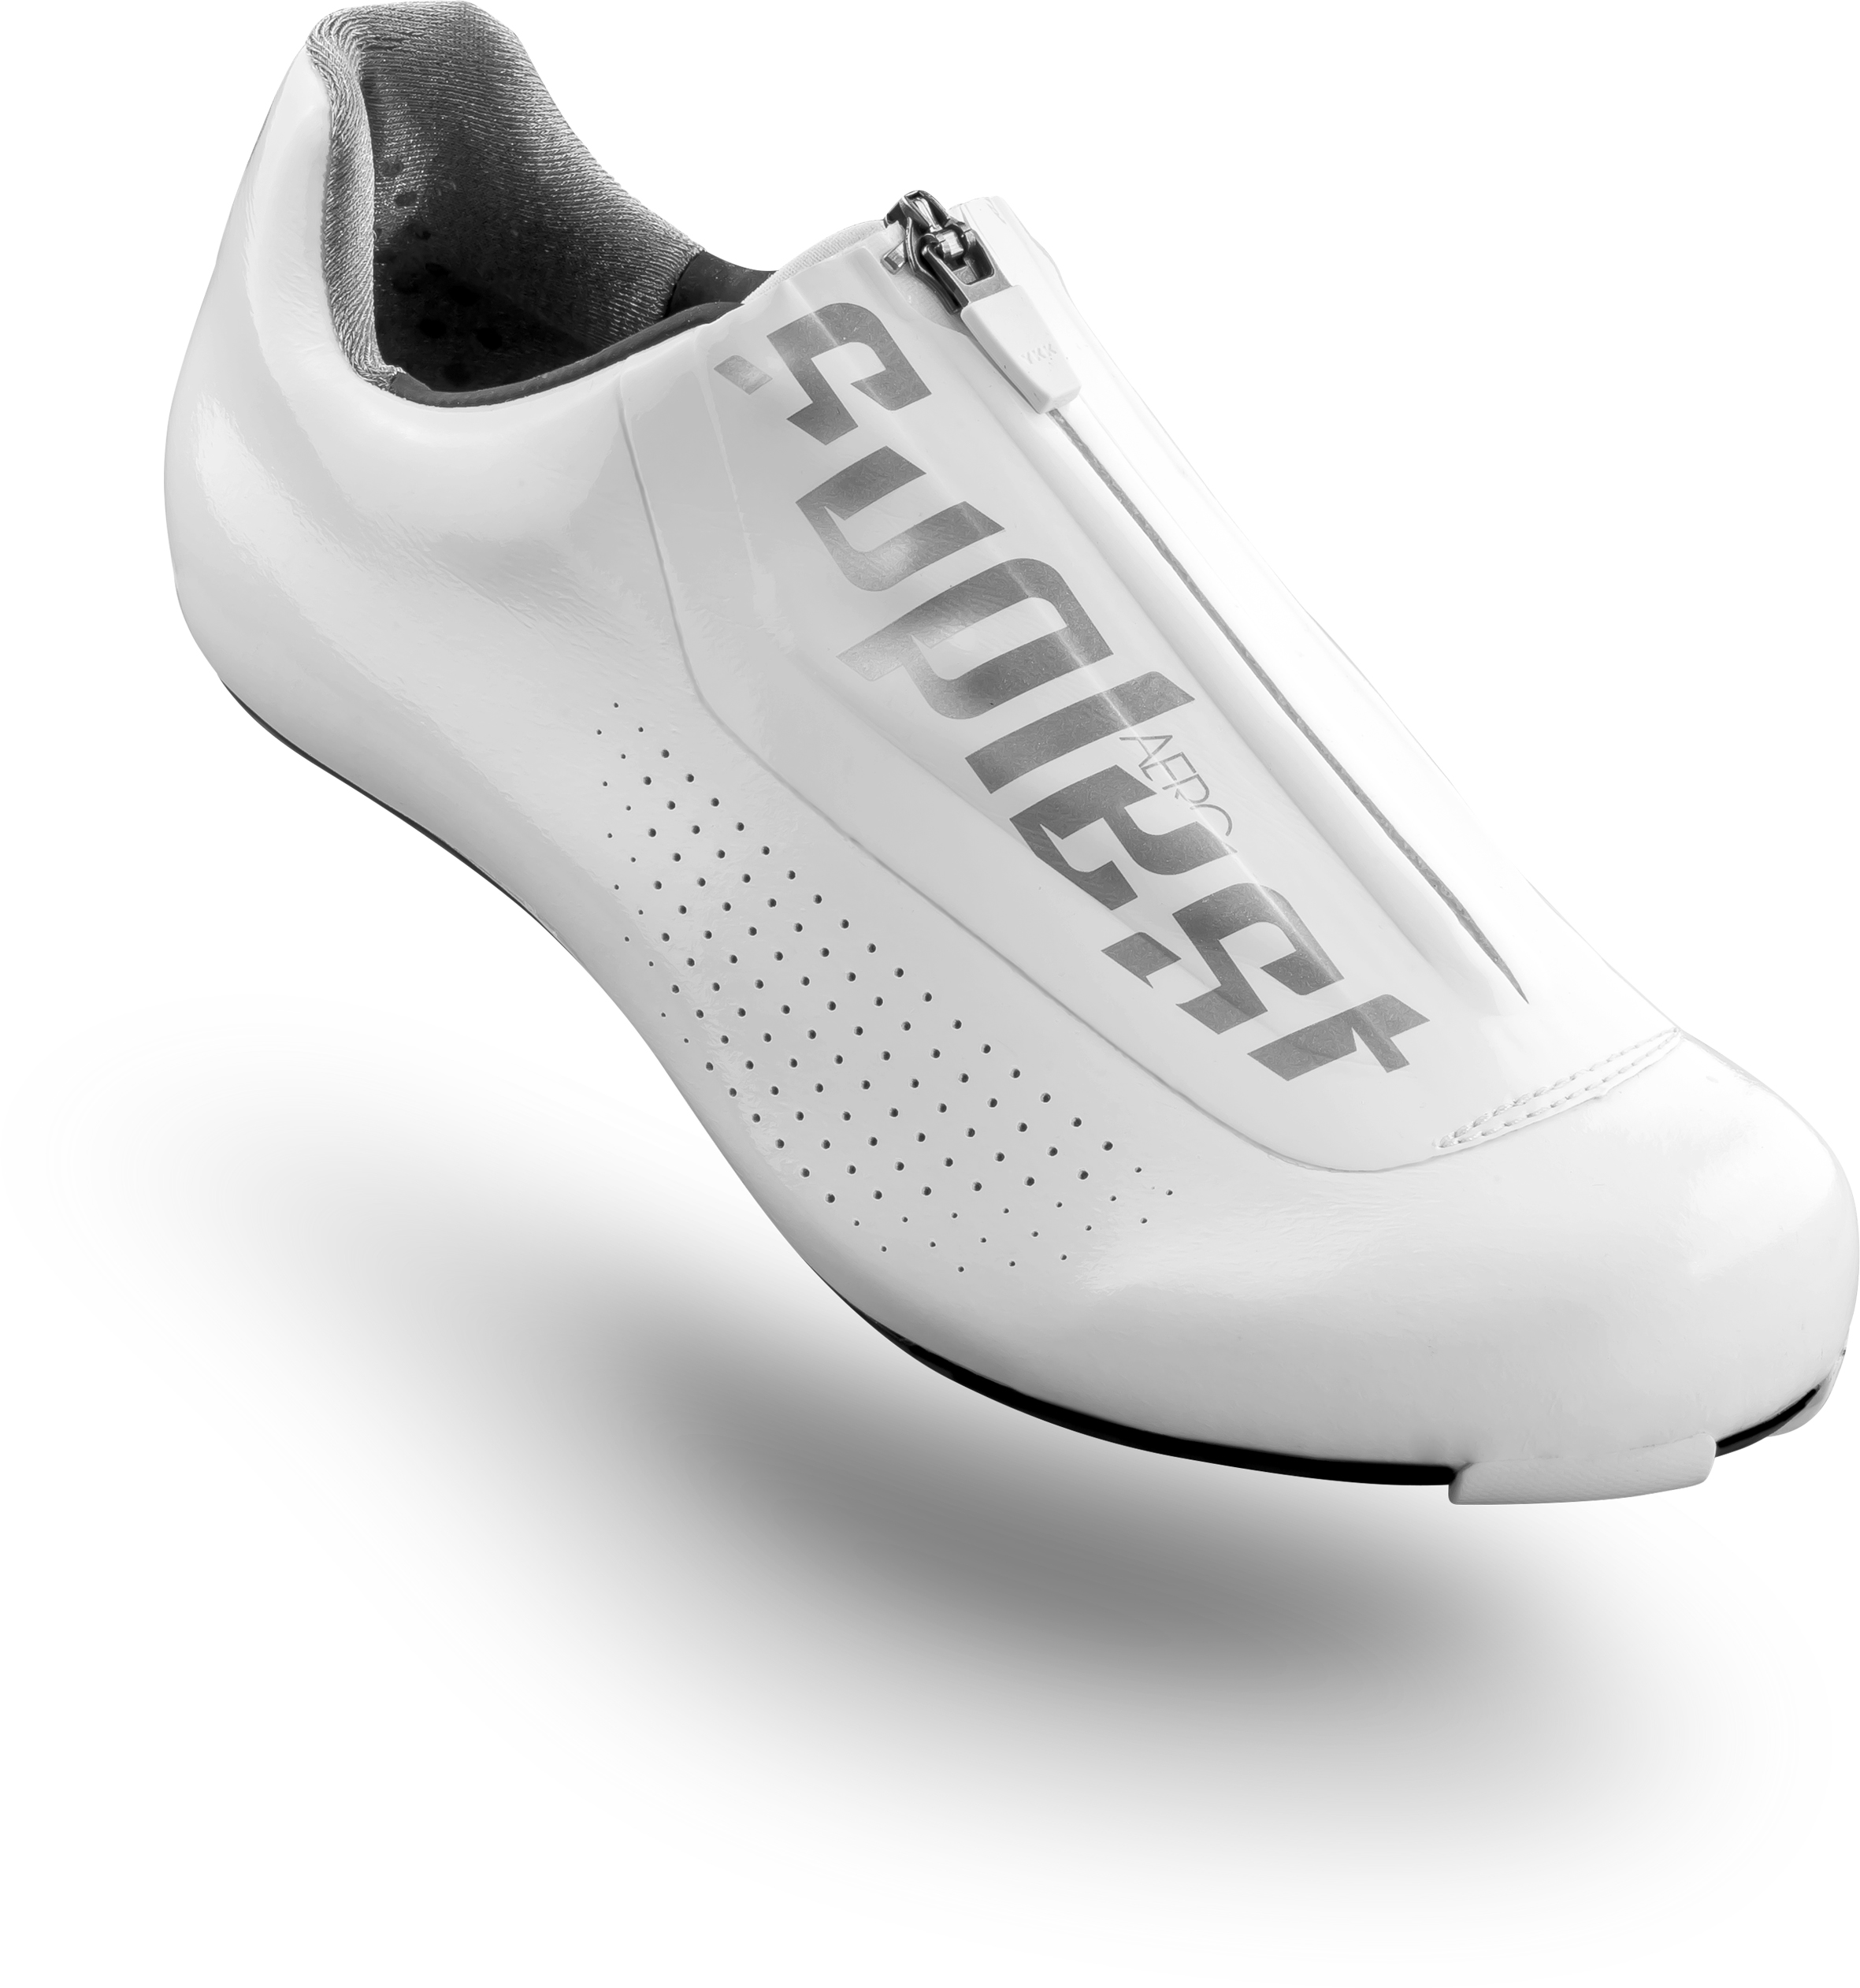 Suplest Edge3 Aero Road Shoe | Shoes and overlays